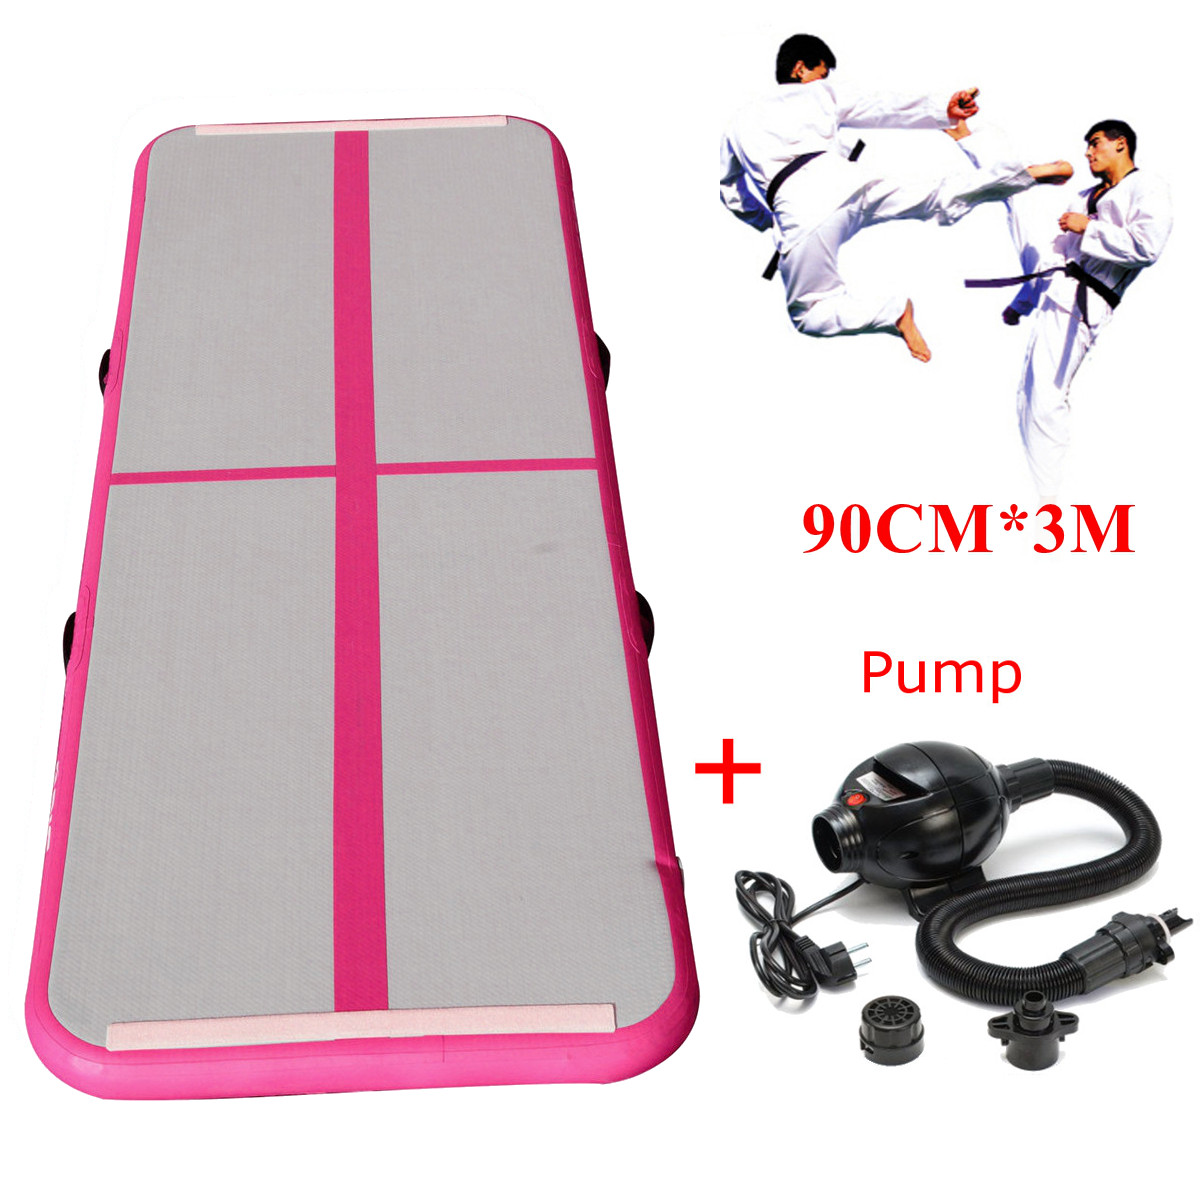 Gofun 118x35x4inch Air Tracks Floor Home Gymnastics Tumbling Mat Inflatable Air Tumbling Track GYM 8m gymnastics air track fitness exercise gym air tumbling mat training inflatable track floor home gymnastic high quality